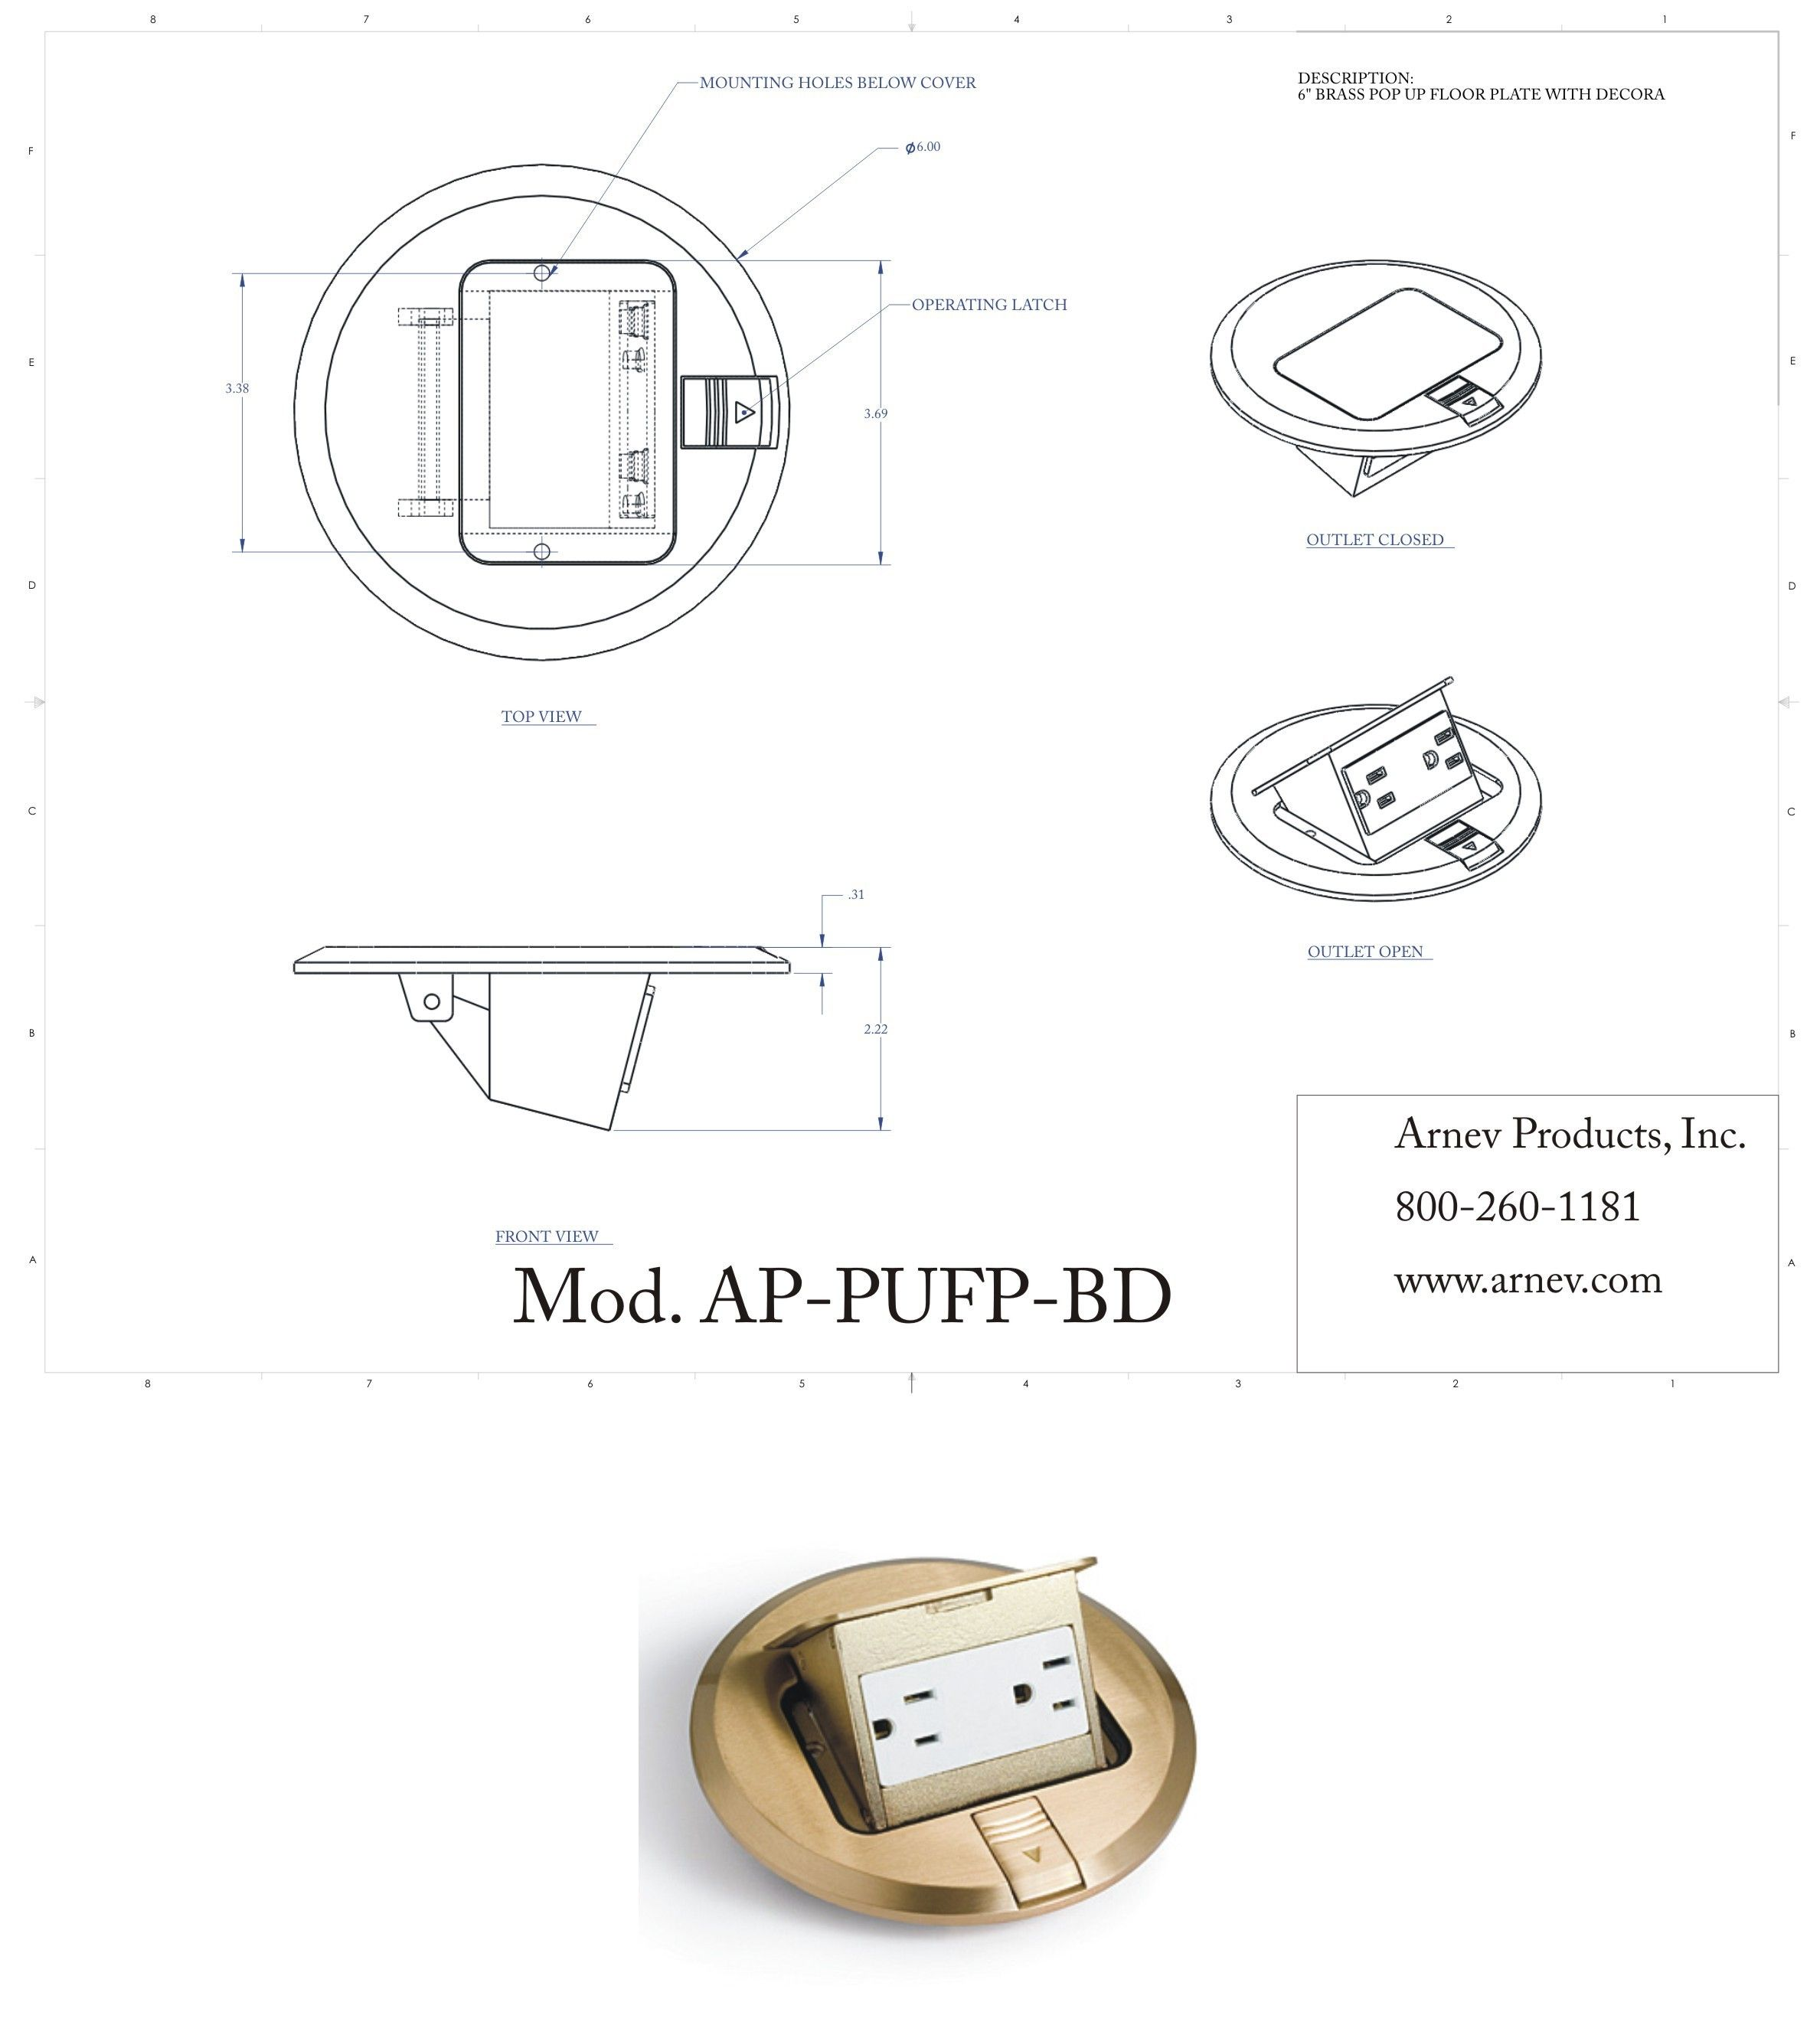 tamper resistant electrical outlet covers